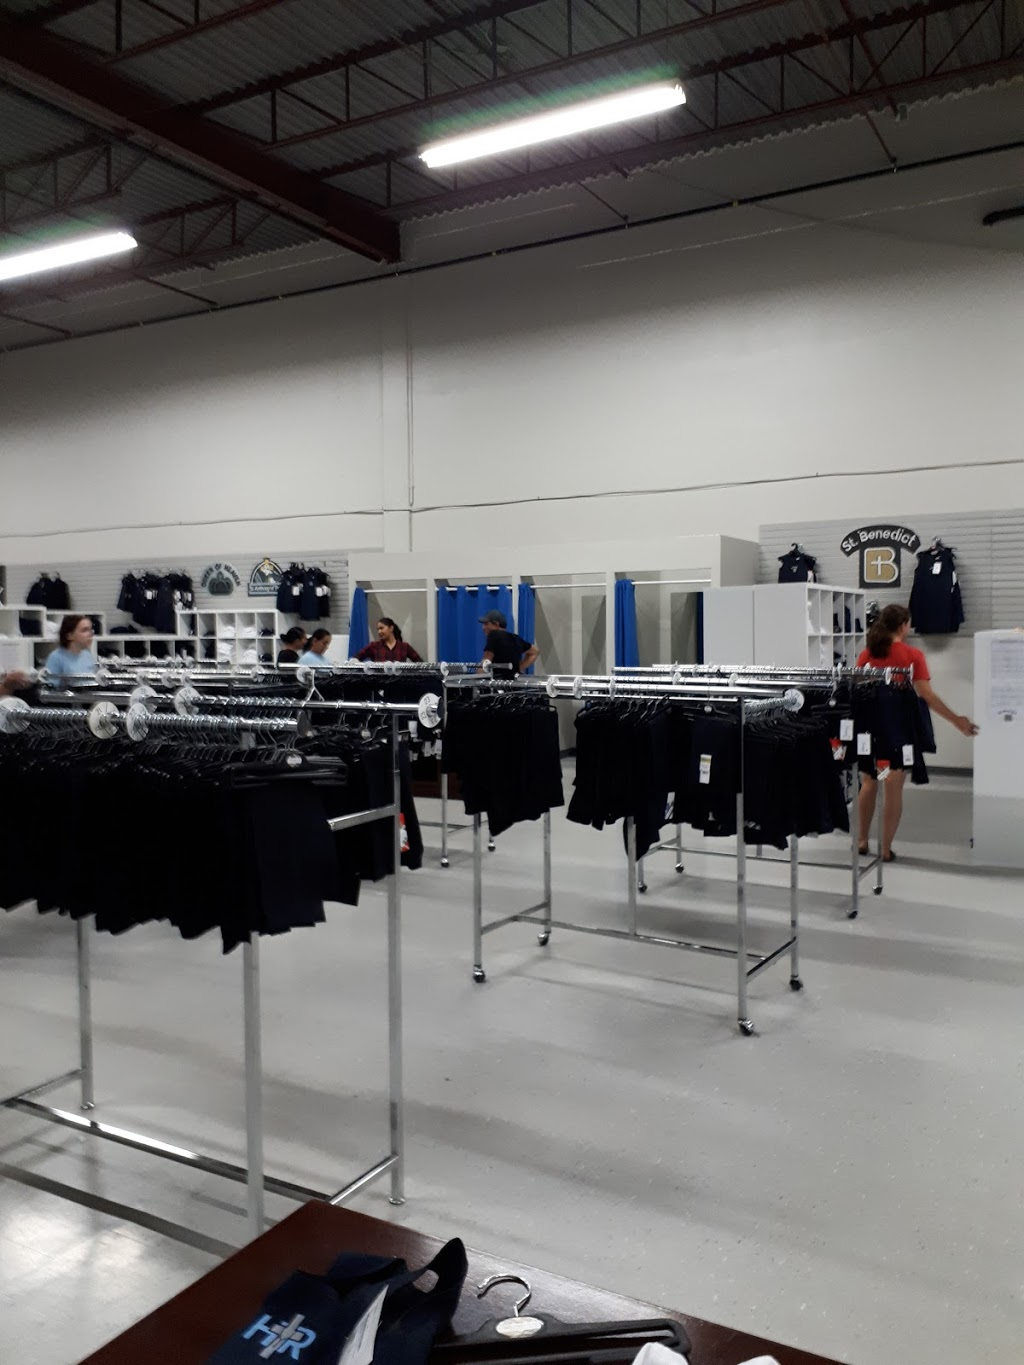 ISW Uniforms Milton | clothing store | 720 Nipissing Rd, Milton, ON L9T 4Z9, Canada | 9058644222 OR +1 905-864-4222